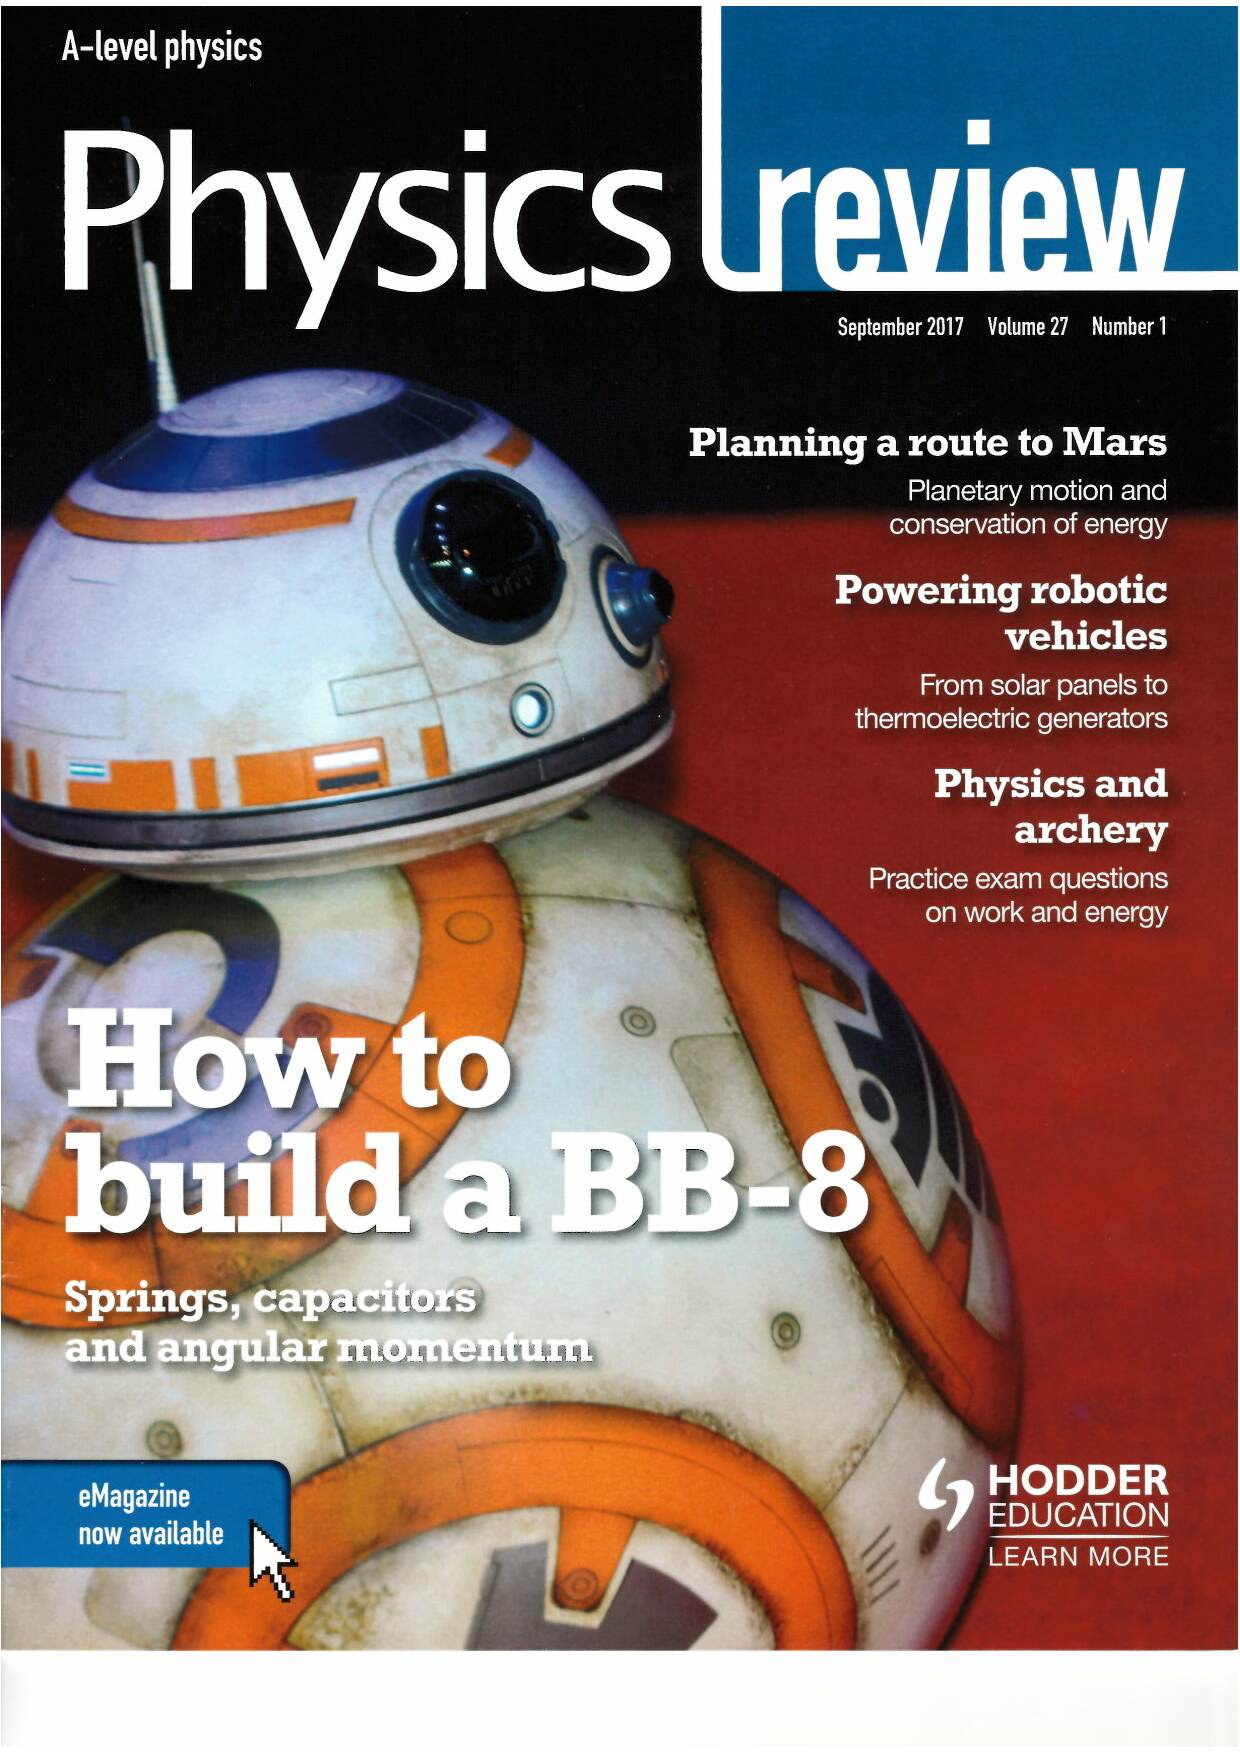 Covers and Contents Search - Physics, The University of York